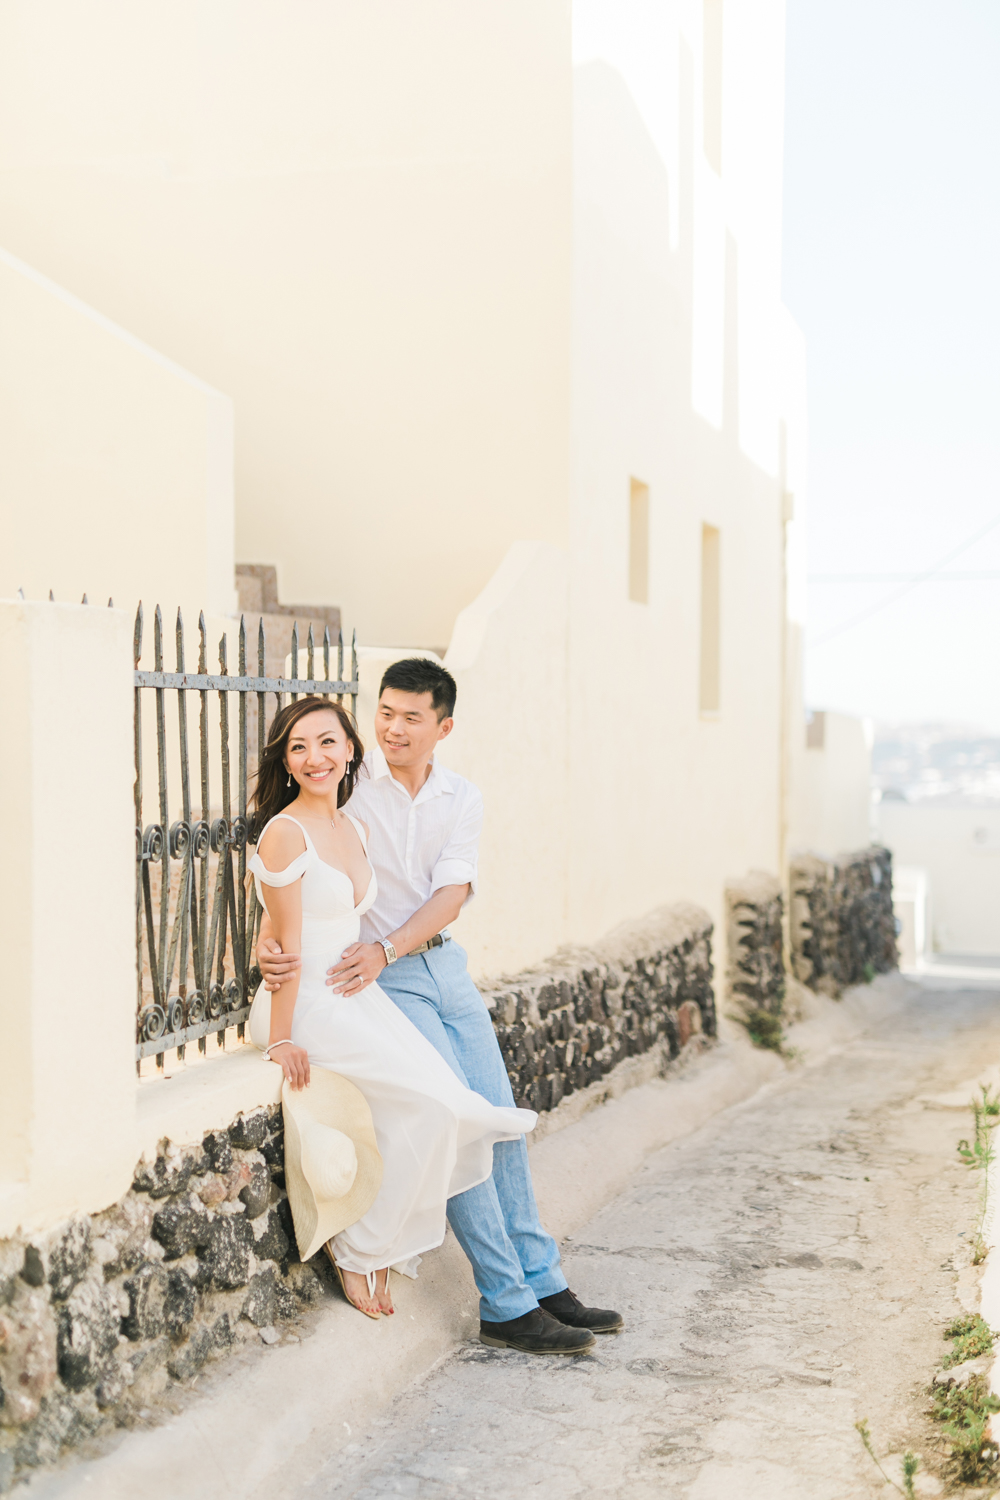 Santorini_Imerovigli_Honeymoon_Photos